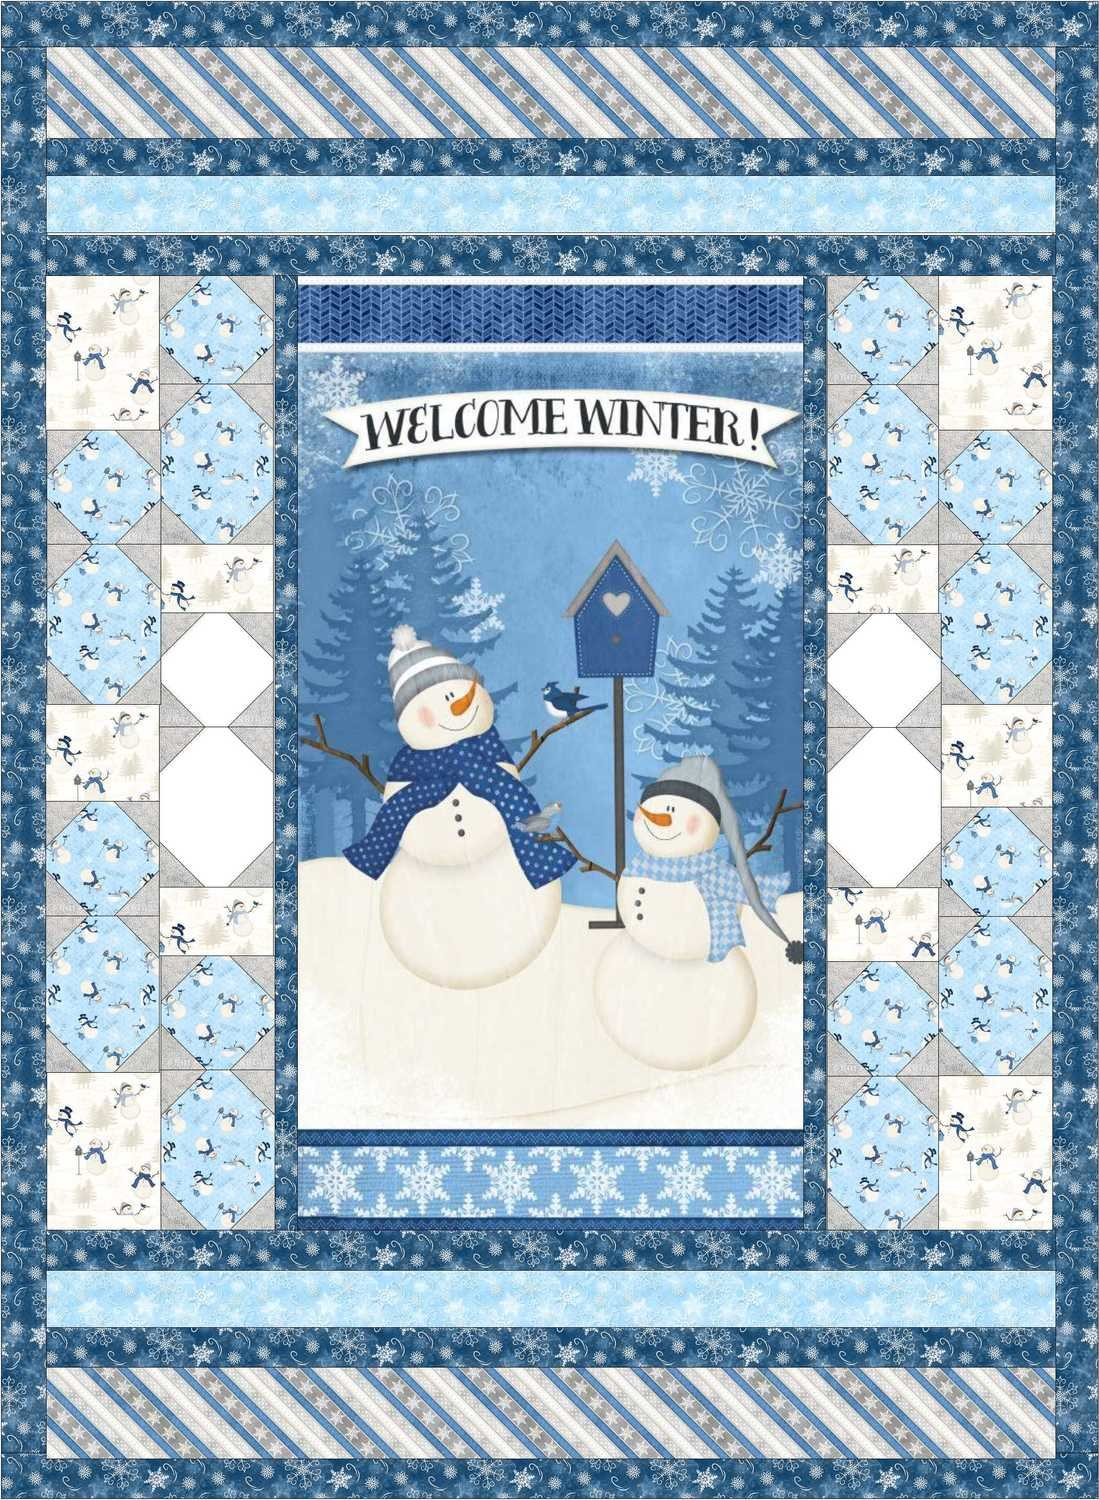 Welcome Winter Fabric Quilt Kit